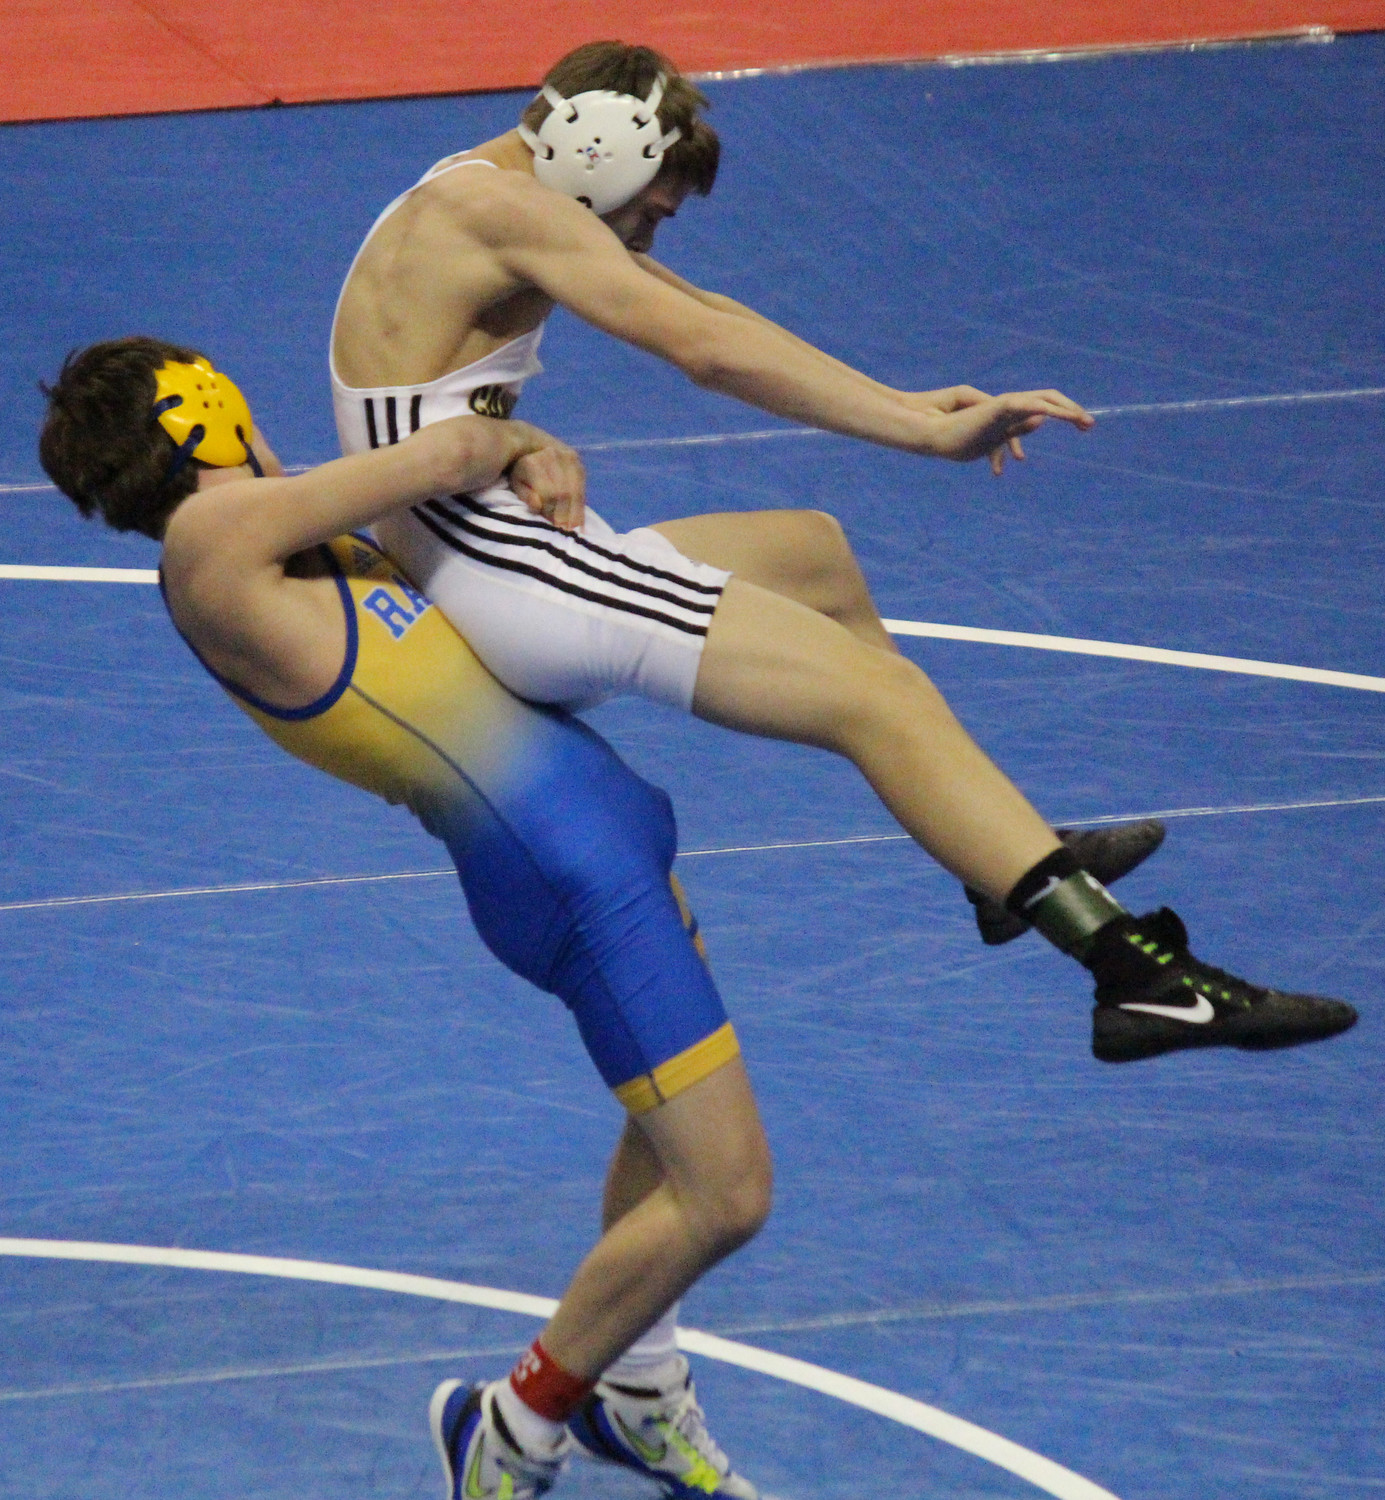 At 120 pounds, Ryan Berstler squared off against Josh Tuckey of Biglerville, a match in which Berstler was able to score a hotly contested escape with 1 second on the clock to seize the win.